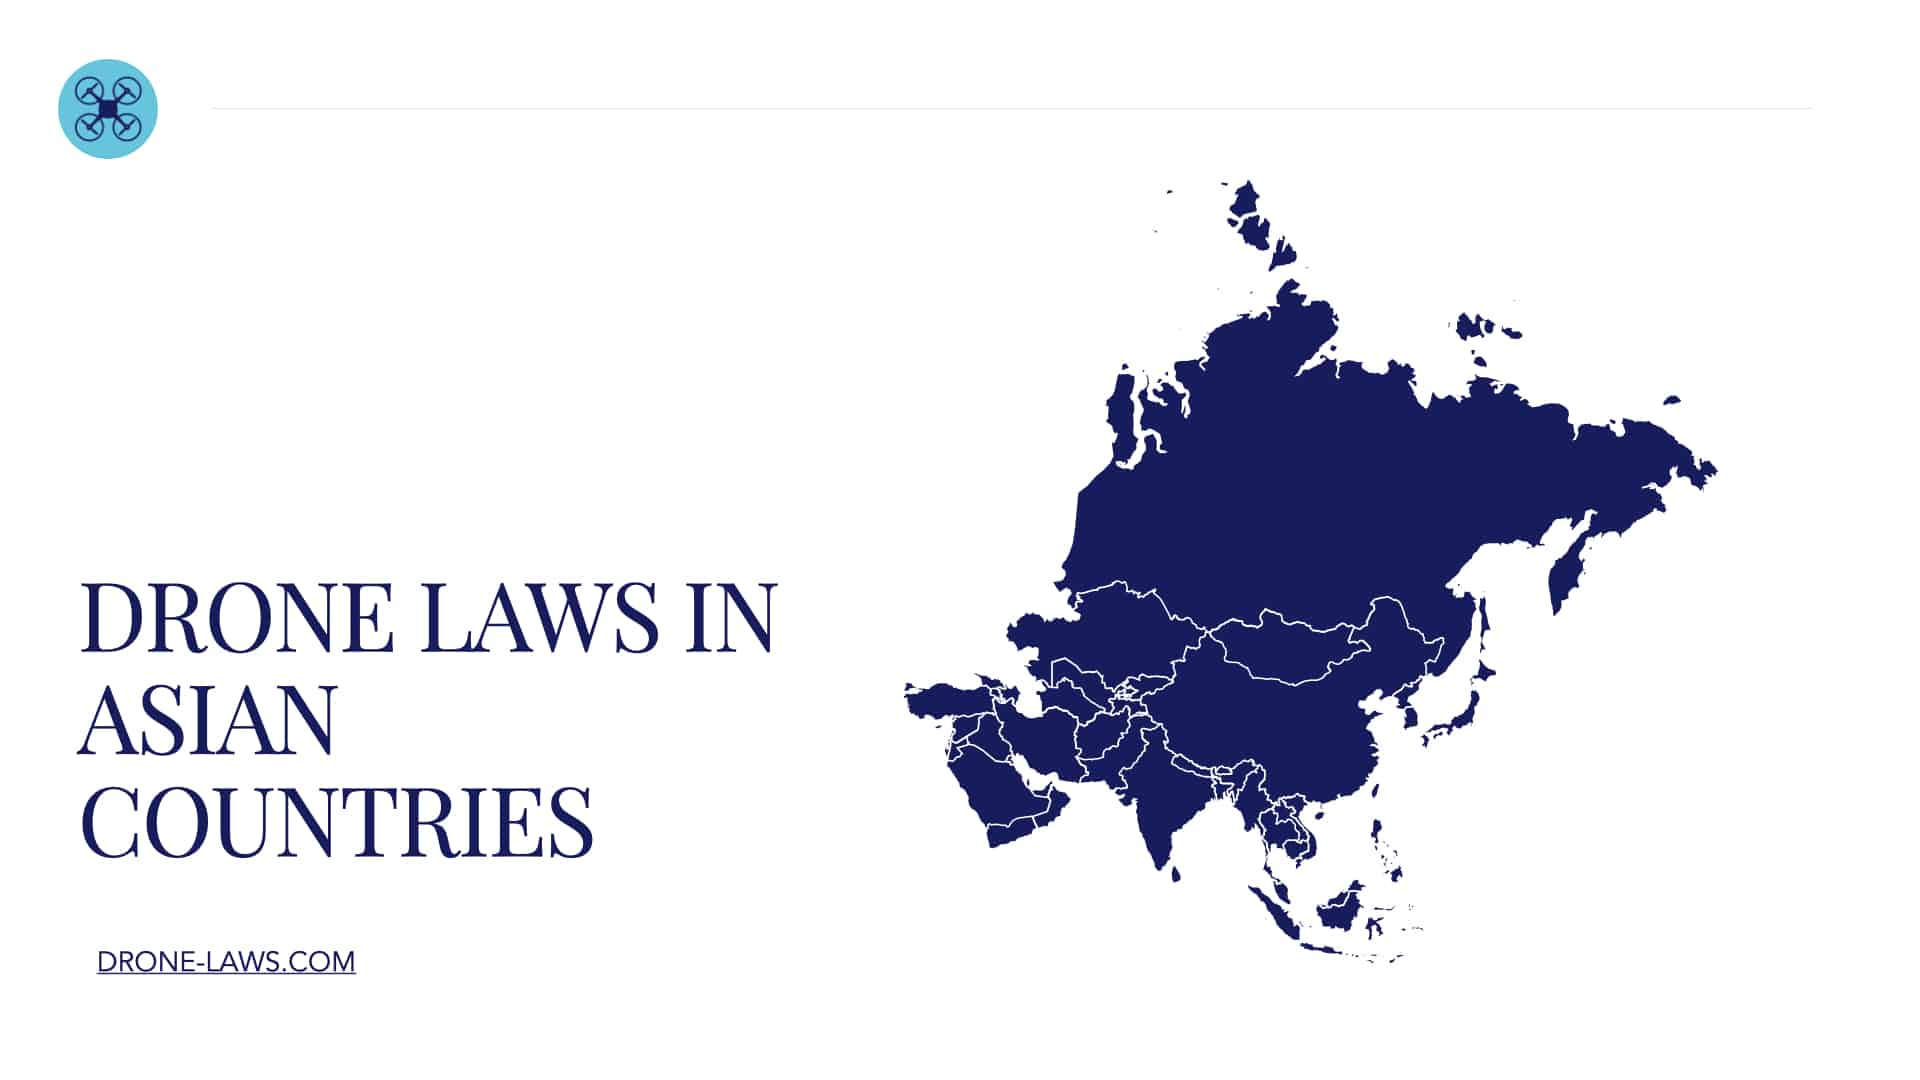 Drone Laws in Asian Countries